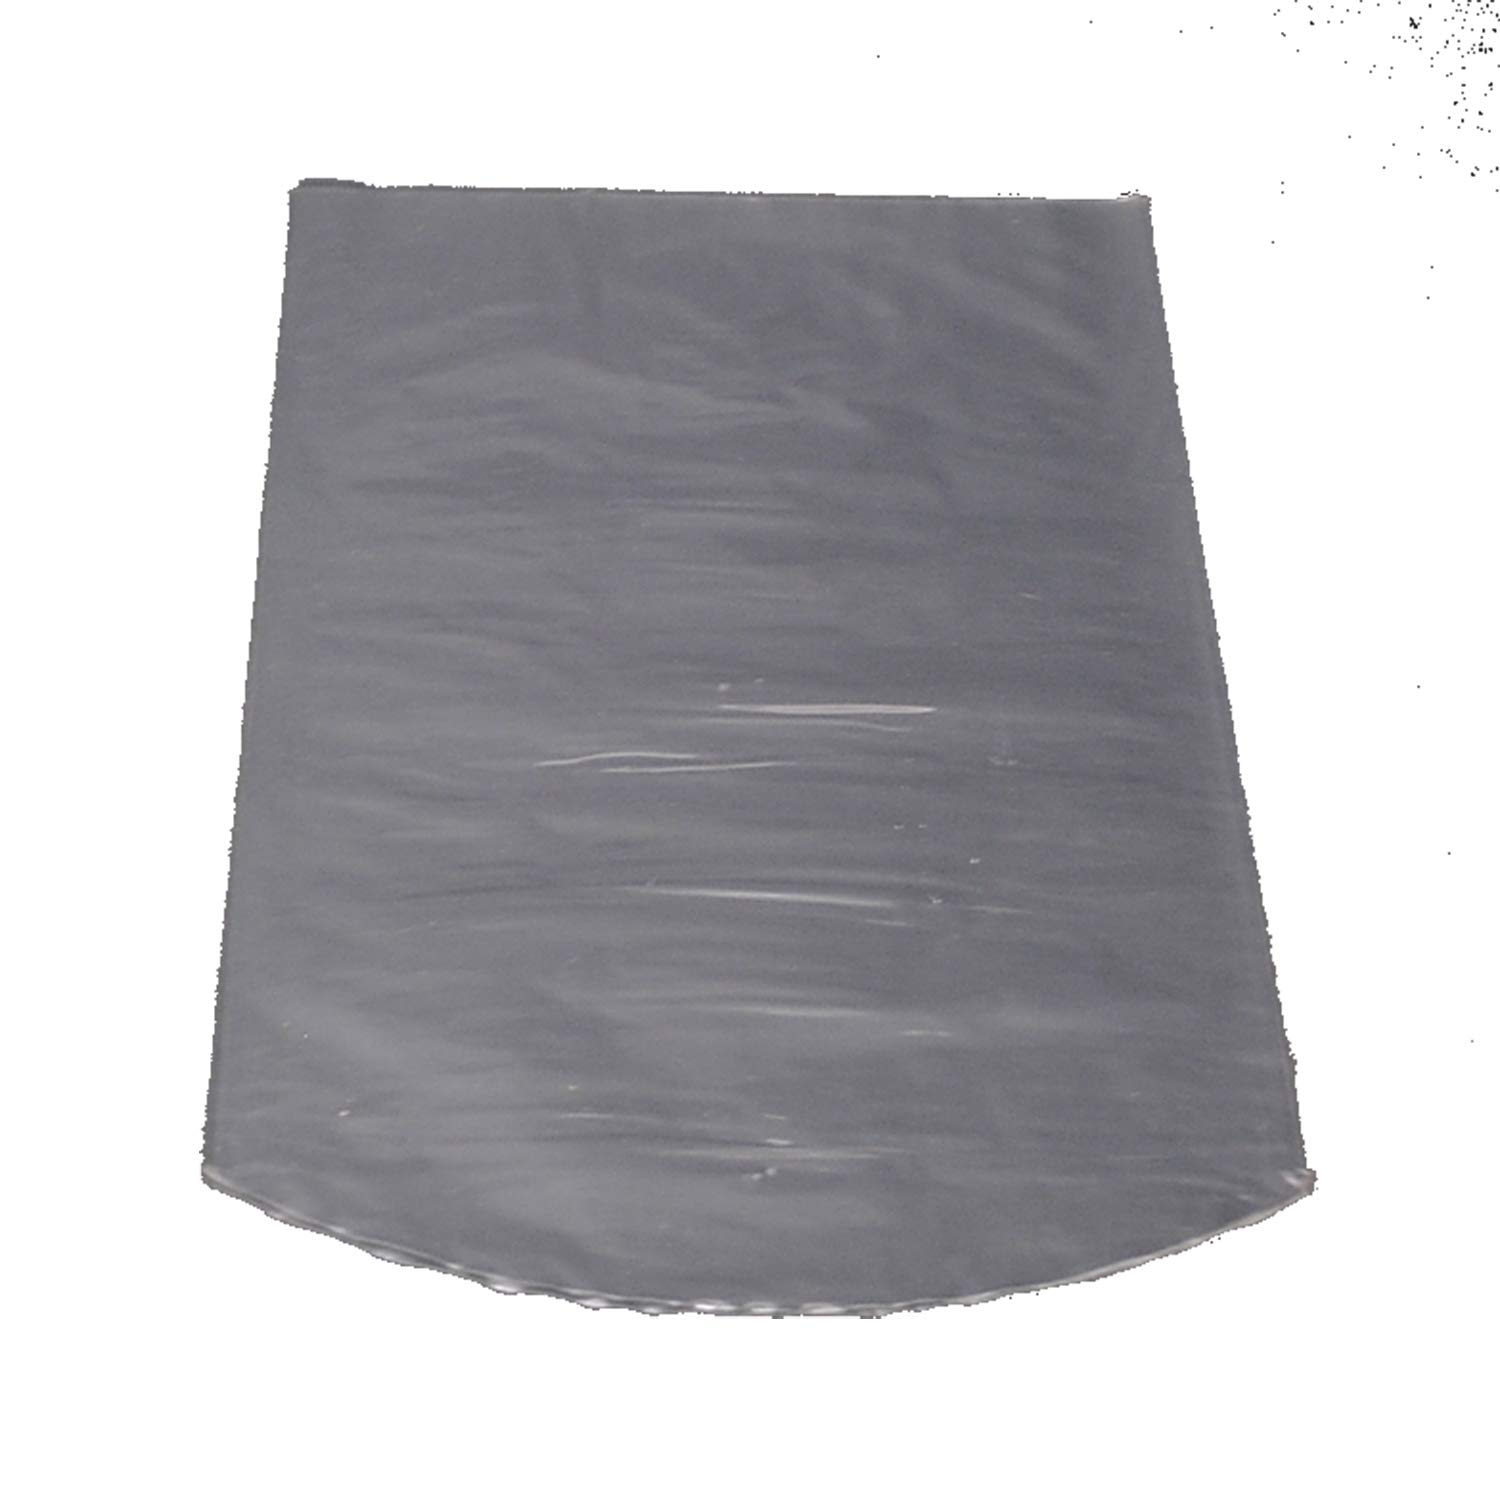 Tapered End D-rings On All Sides Lightweight Shrink-Proof Just 20 X 28 Cordura® Boat Tarp